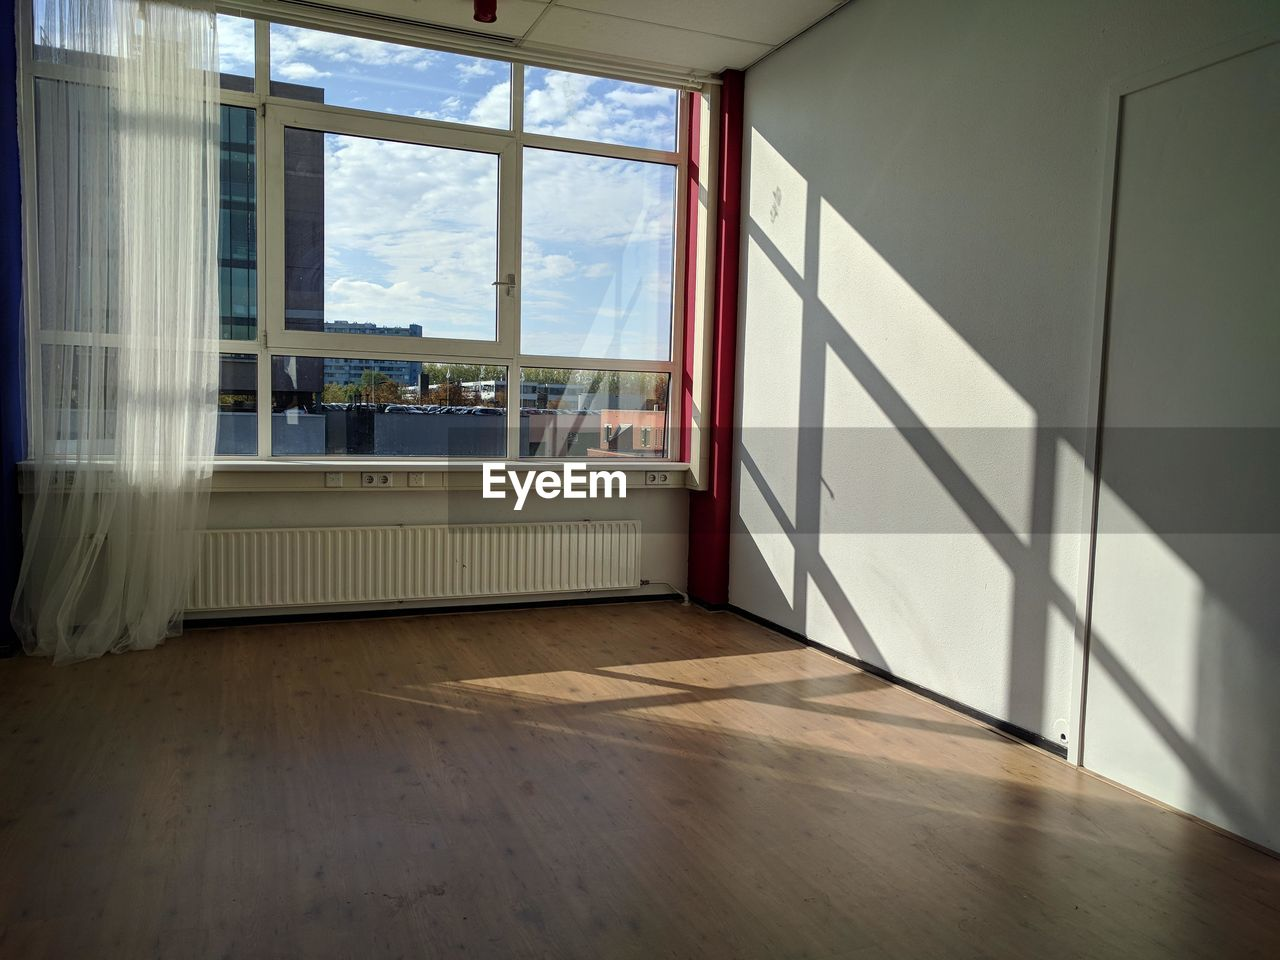 window, indoors, hardwood floor, flooring, wood, glass - material, home interior, day, empty, architecture, transparent, absence, built structure, no people, nature, domestic room, seat, sunlight, building